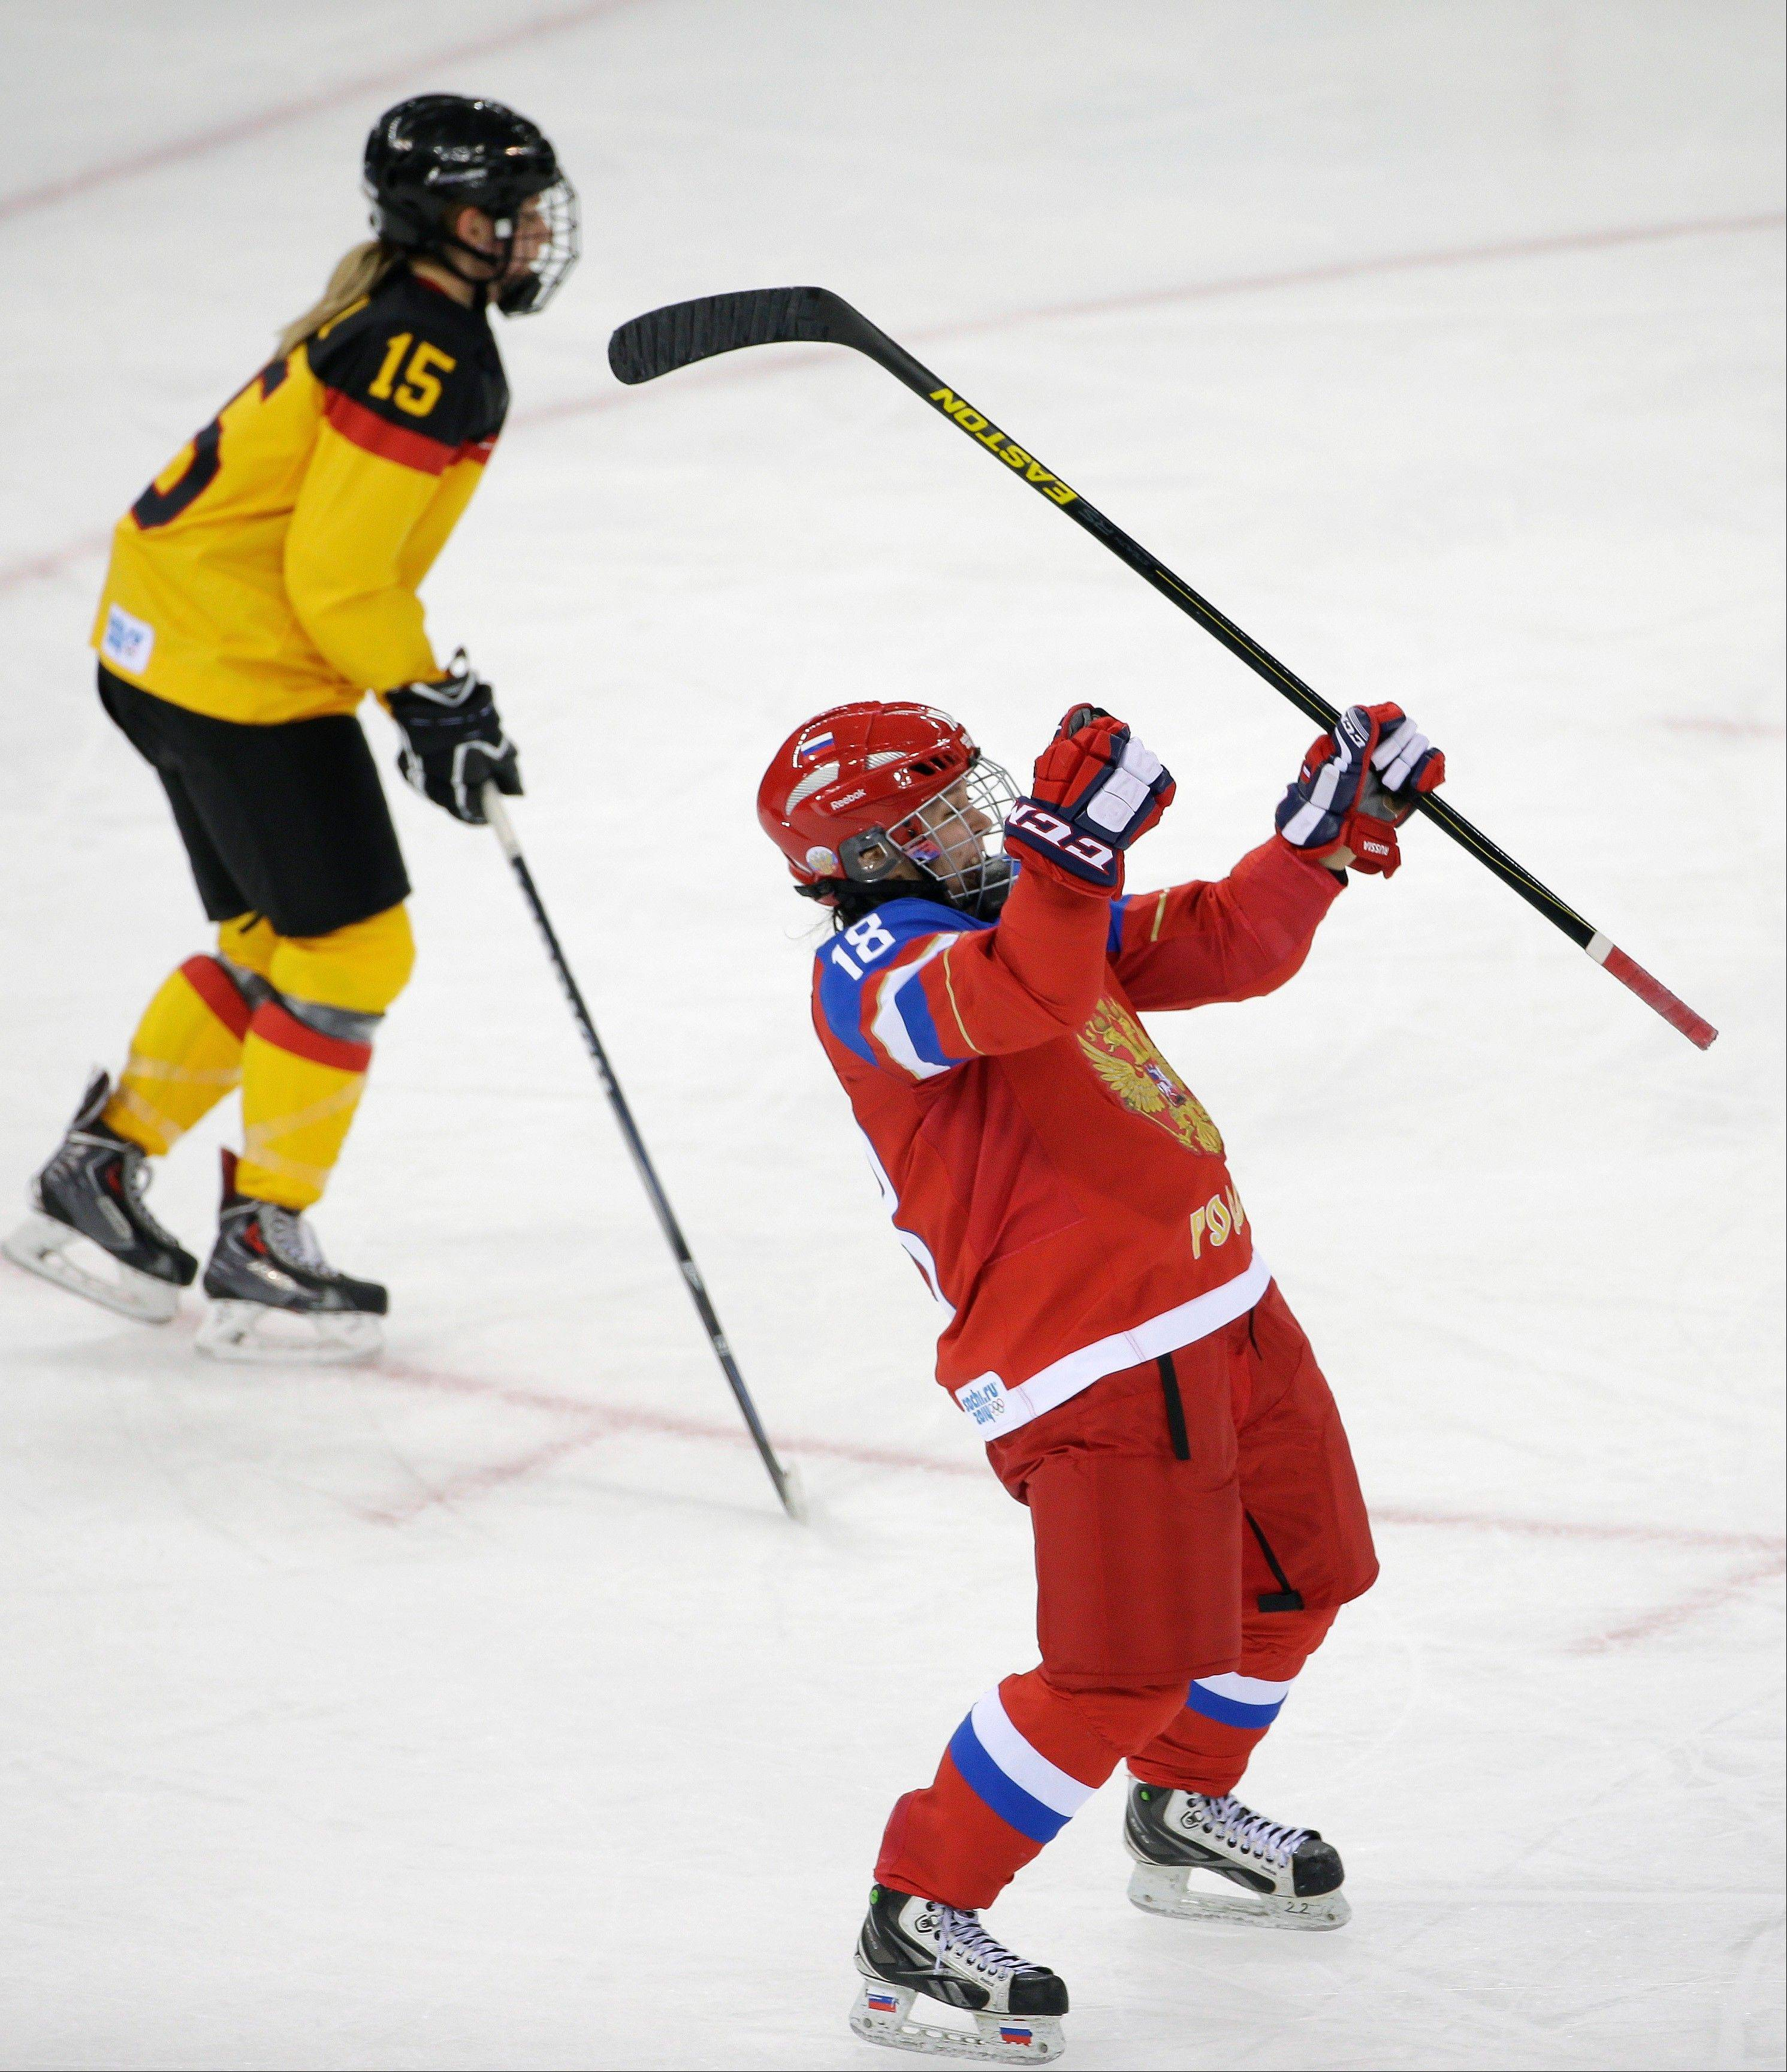 Olga Sosina of Russia celebrates her second goal against Germany as Andrea Lanzl of Germany skates by during the third period of the 2014 Winter Olympics women's ice hockey game at Shayba Arena, Sunday, Feb. 9, 2014, in Sochi, Russia.